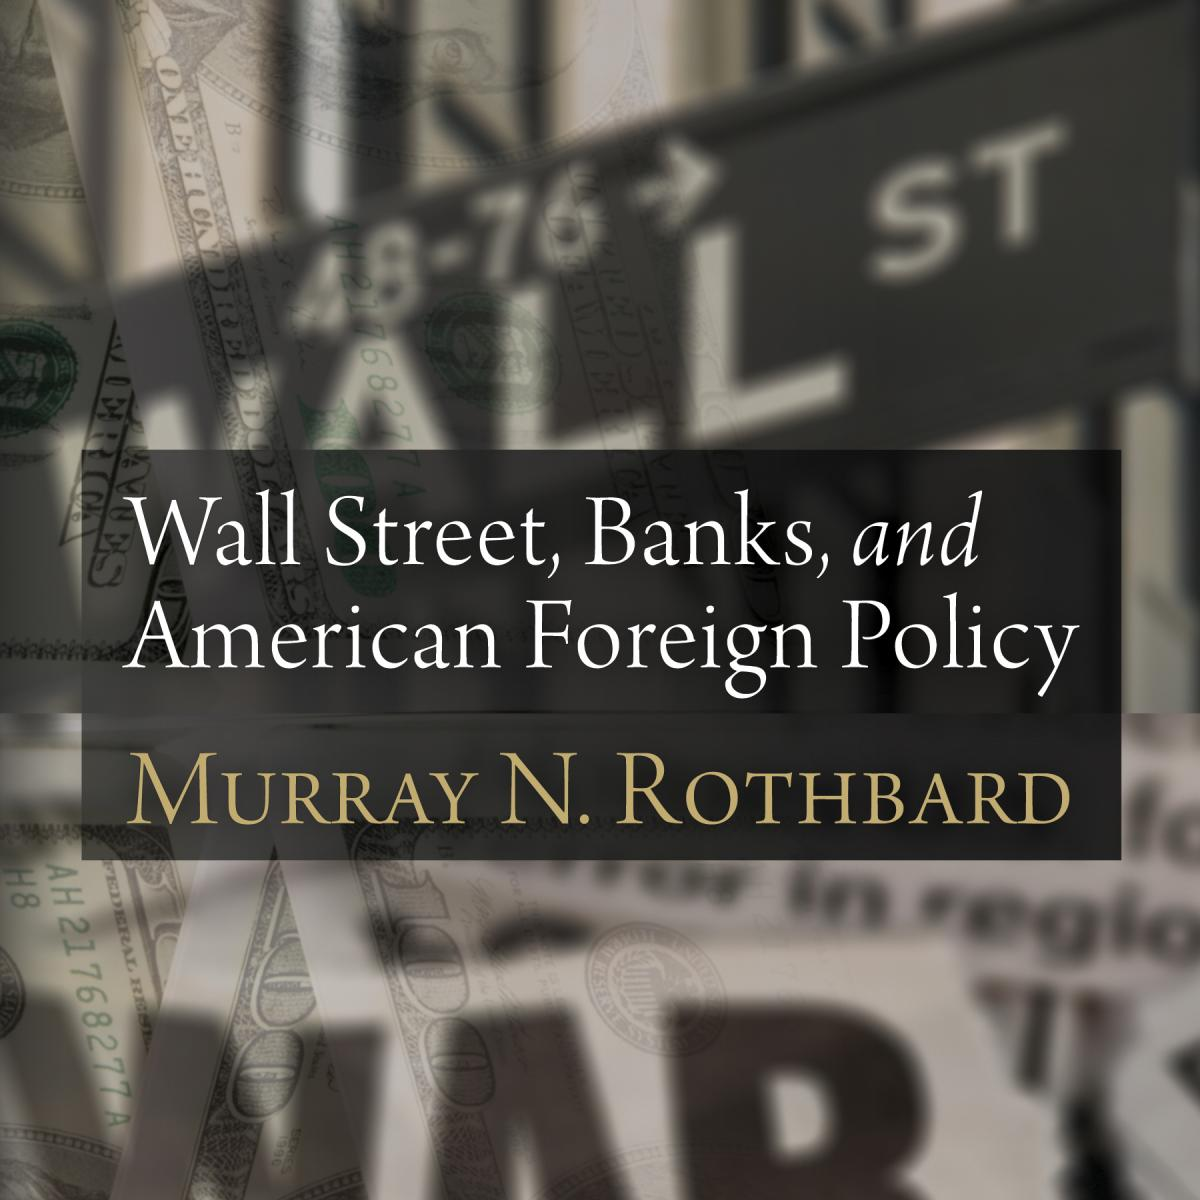 Wall Street, Banks, and American Foreign Policy | Mises